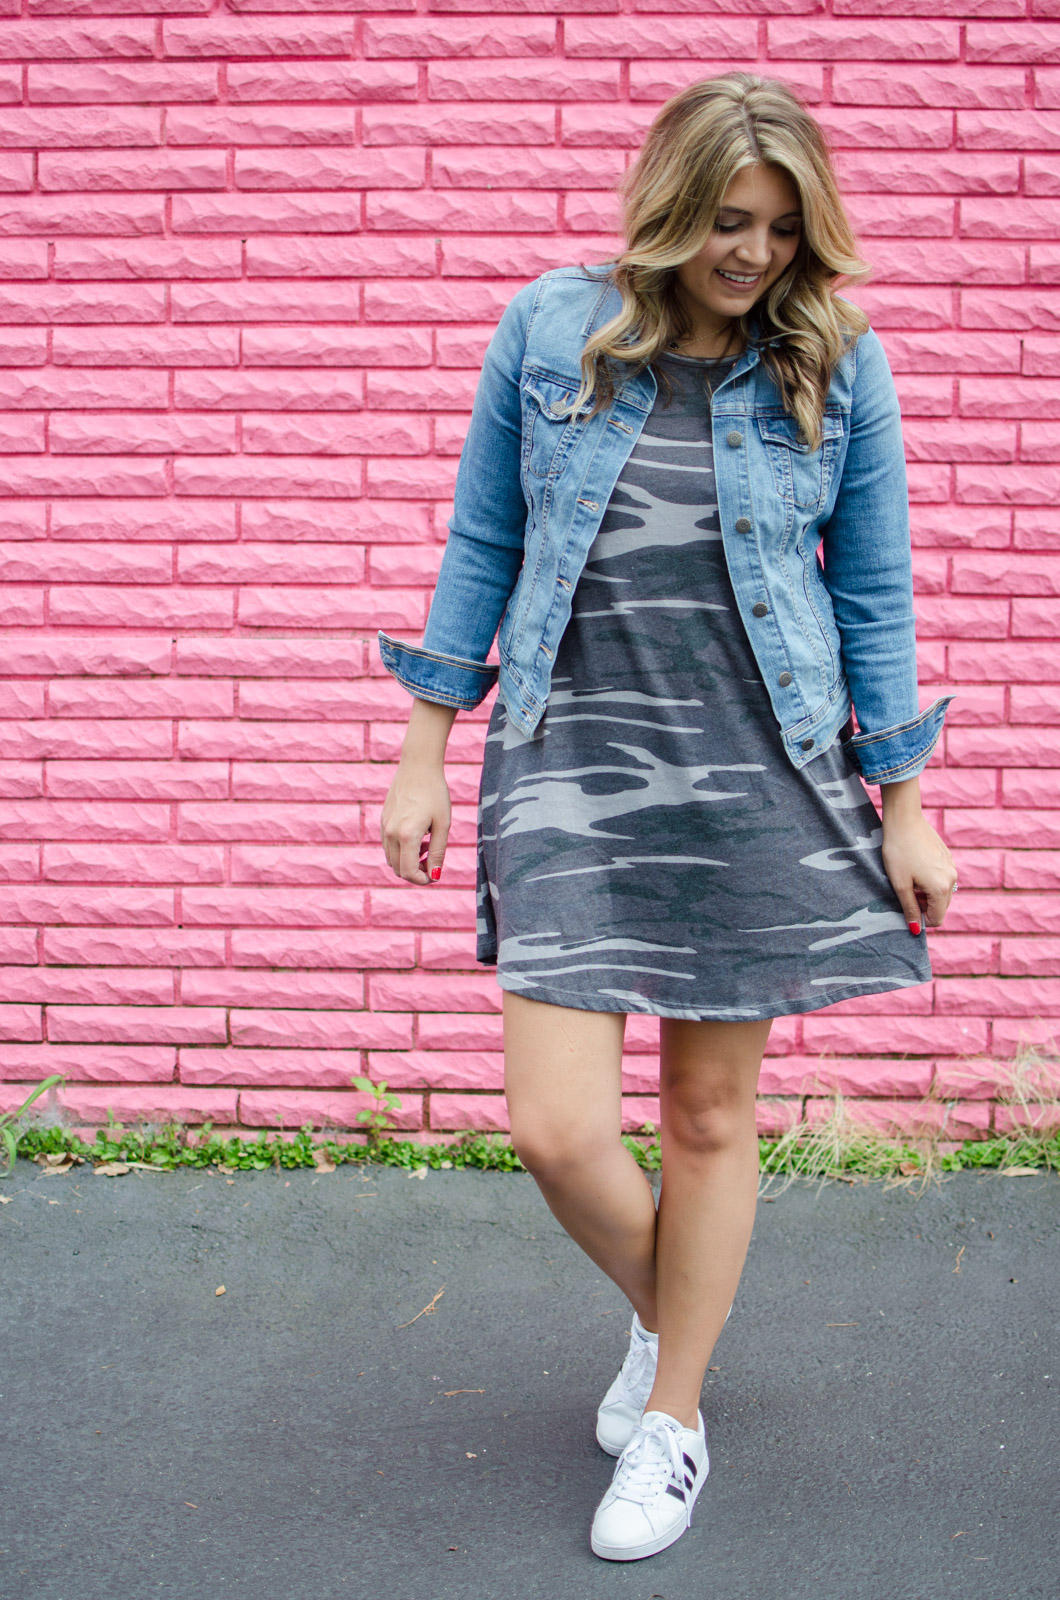 how wear camo - camo dress | For more cute Fall outfits, go to bylaurenm.com!